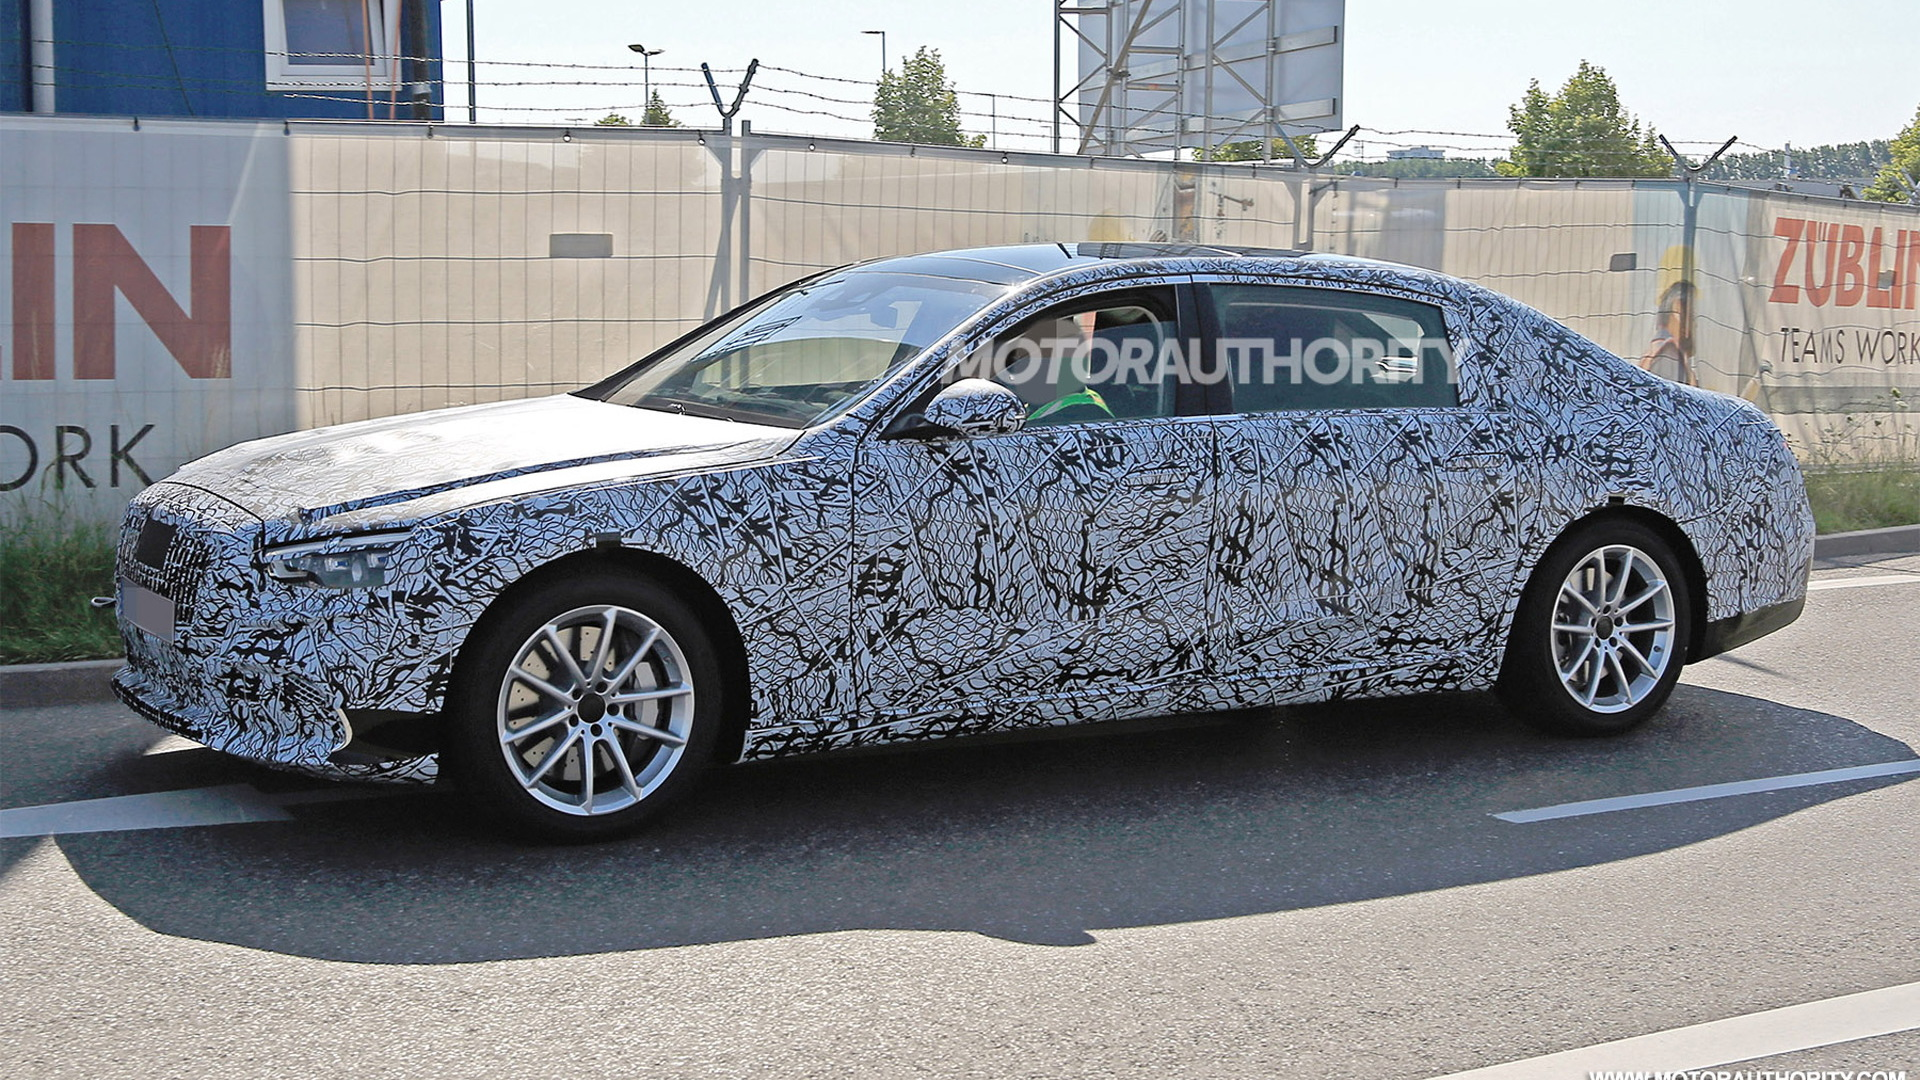 2021 Mercedes-Maybach S-Class spy shots - Image via S. Baldauf/SB-Medien